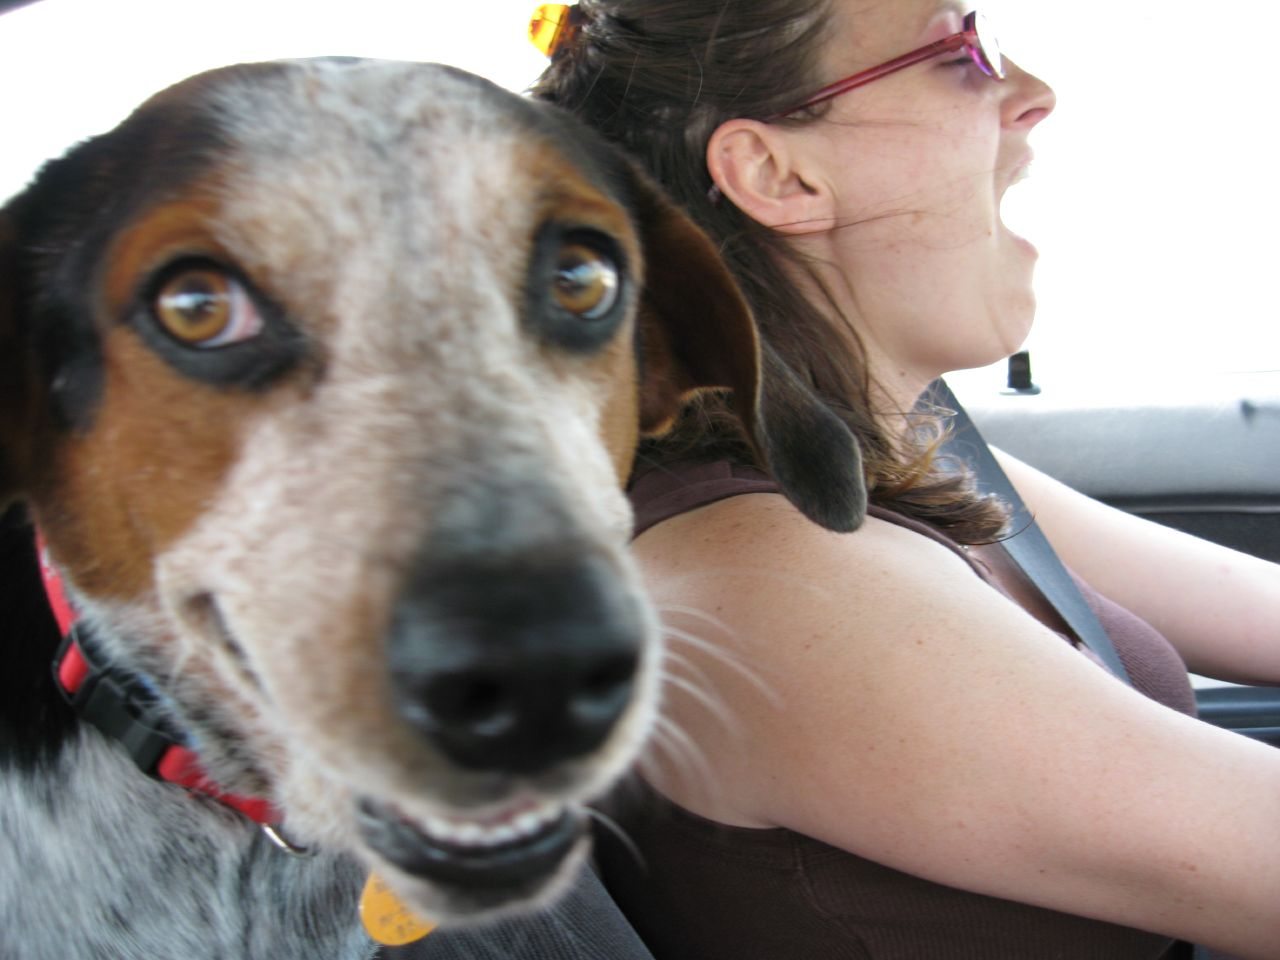 ensurring safety of pet animals while driving